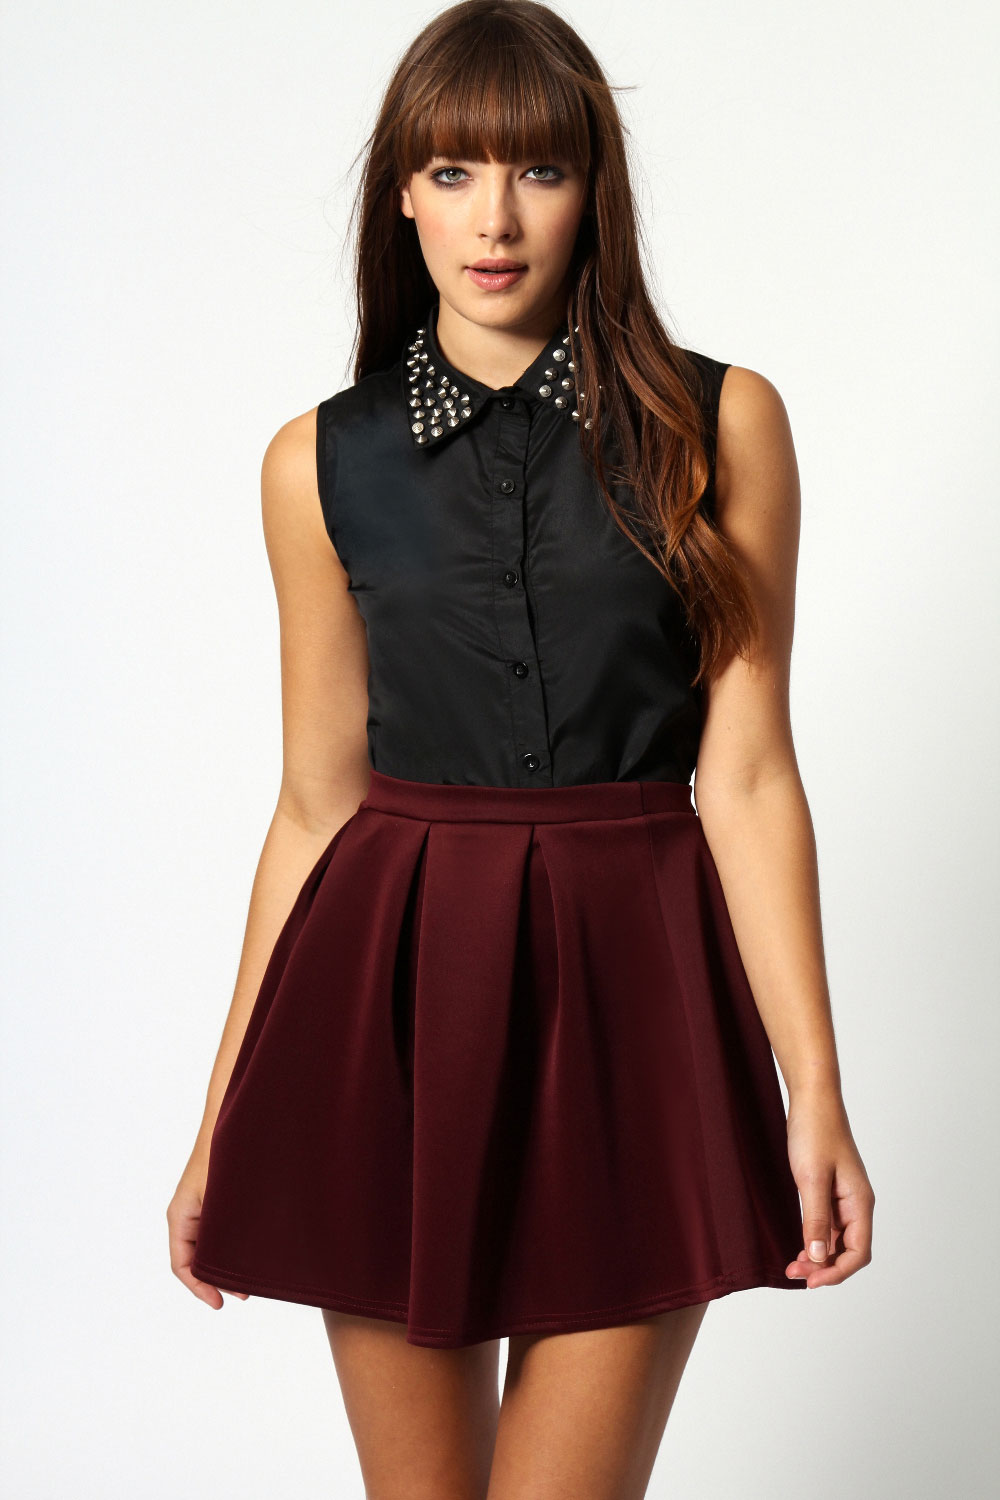 Skater Skirts Outfits – One of the most needed garments which should be in every girl's wardrobe is the skater skirt. With these skirts obtainable in all colors and patterns and with such a versatile element to them it is beyond easy to gain different stylish looks.